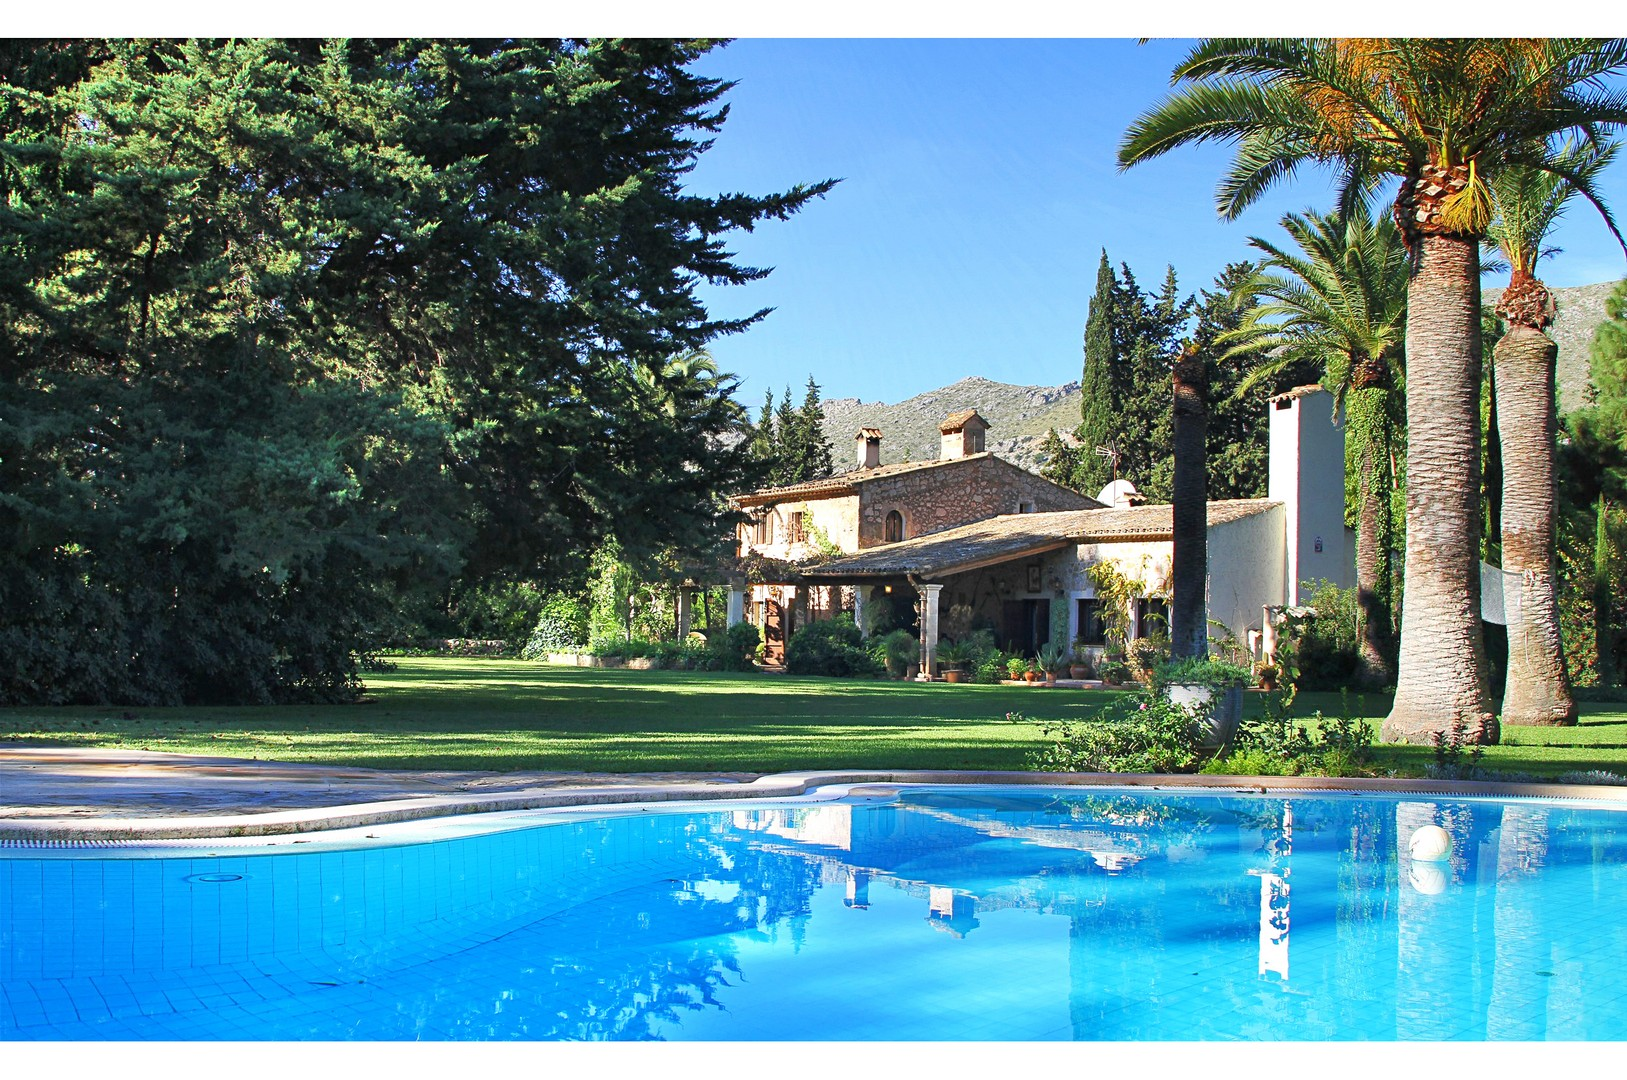 AH2613 - 7 Bed Villa With Large Garden Walking Distance To Puerto Pollensa